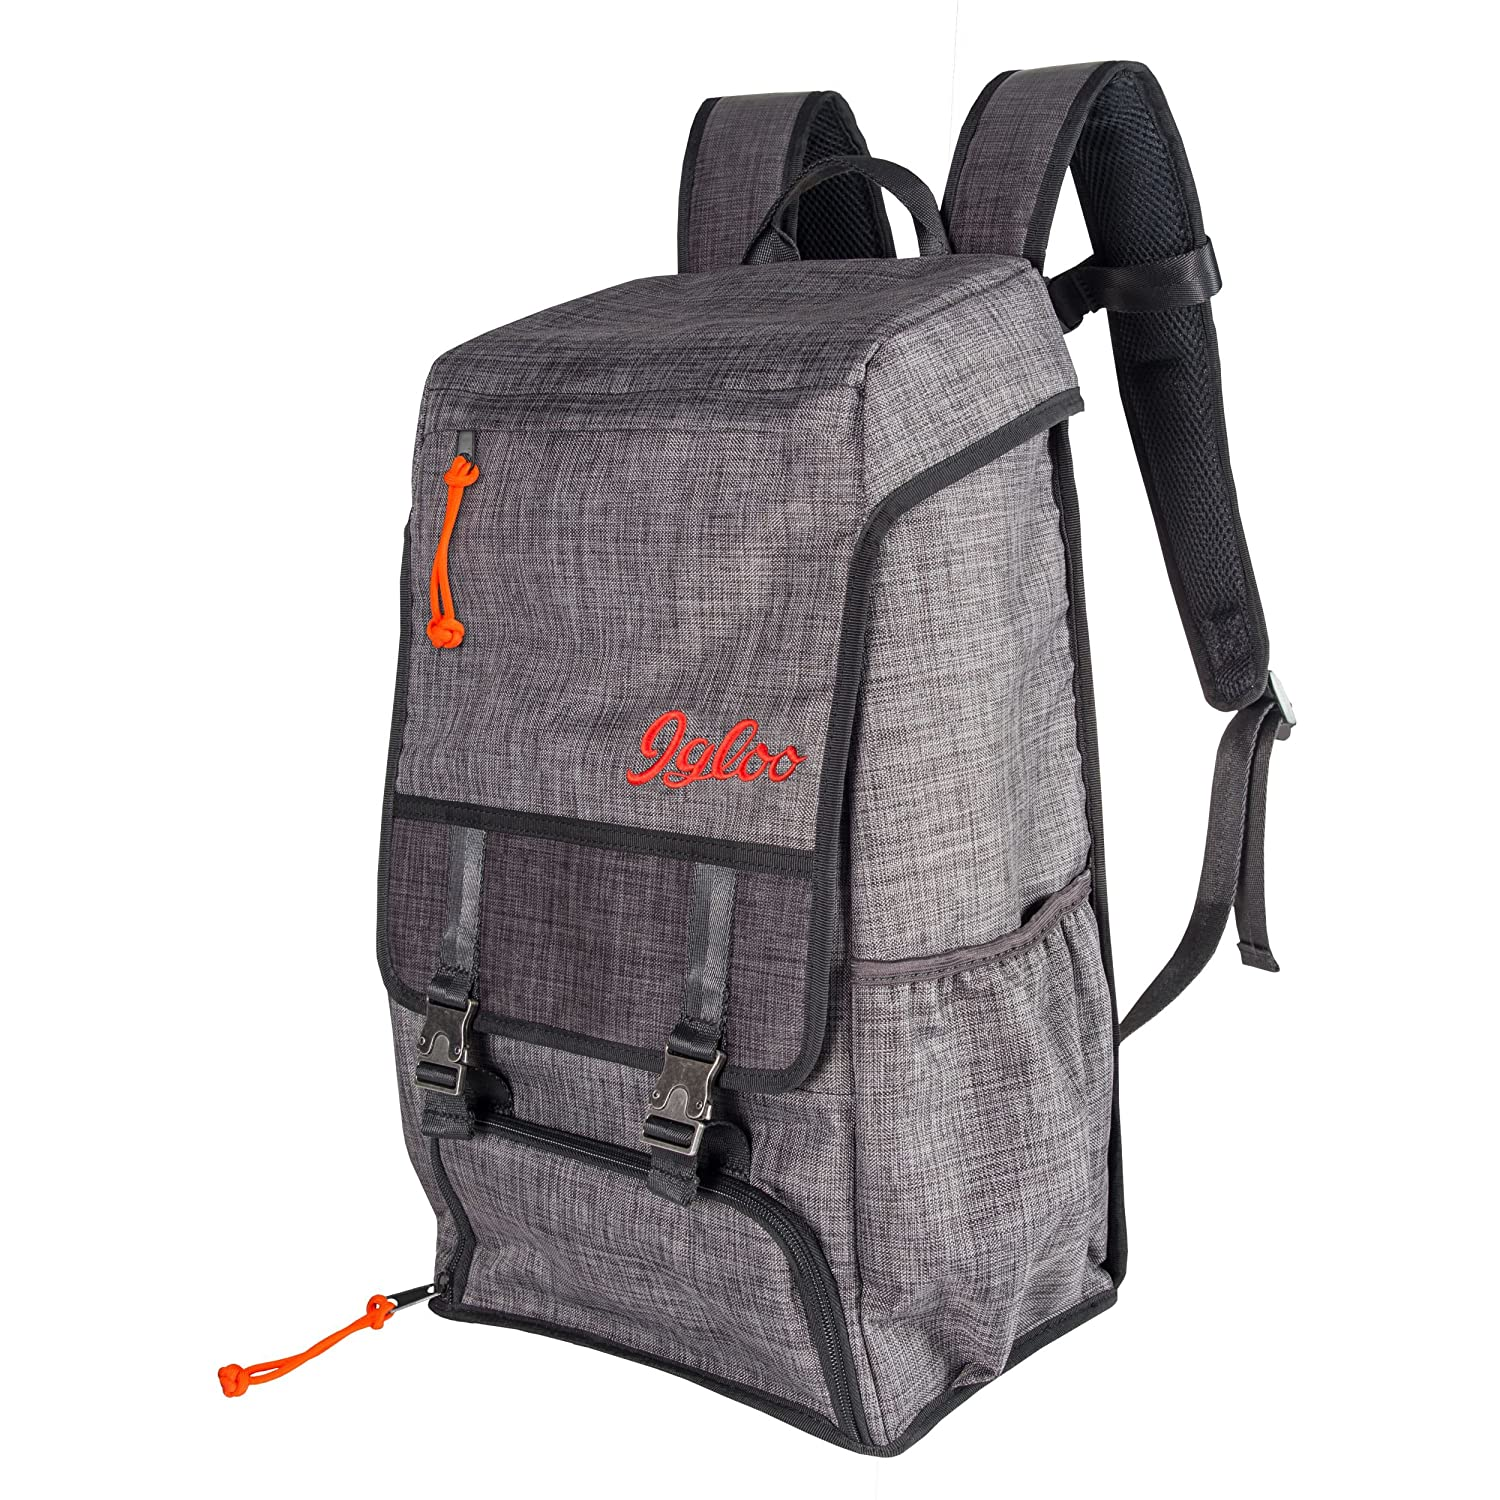 Amazon.com   Igloo Daytripper Insulated Backpack   Sports   Outdoors a081b6c7ee5b7